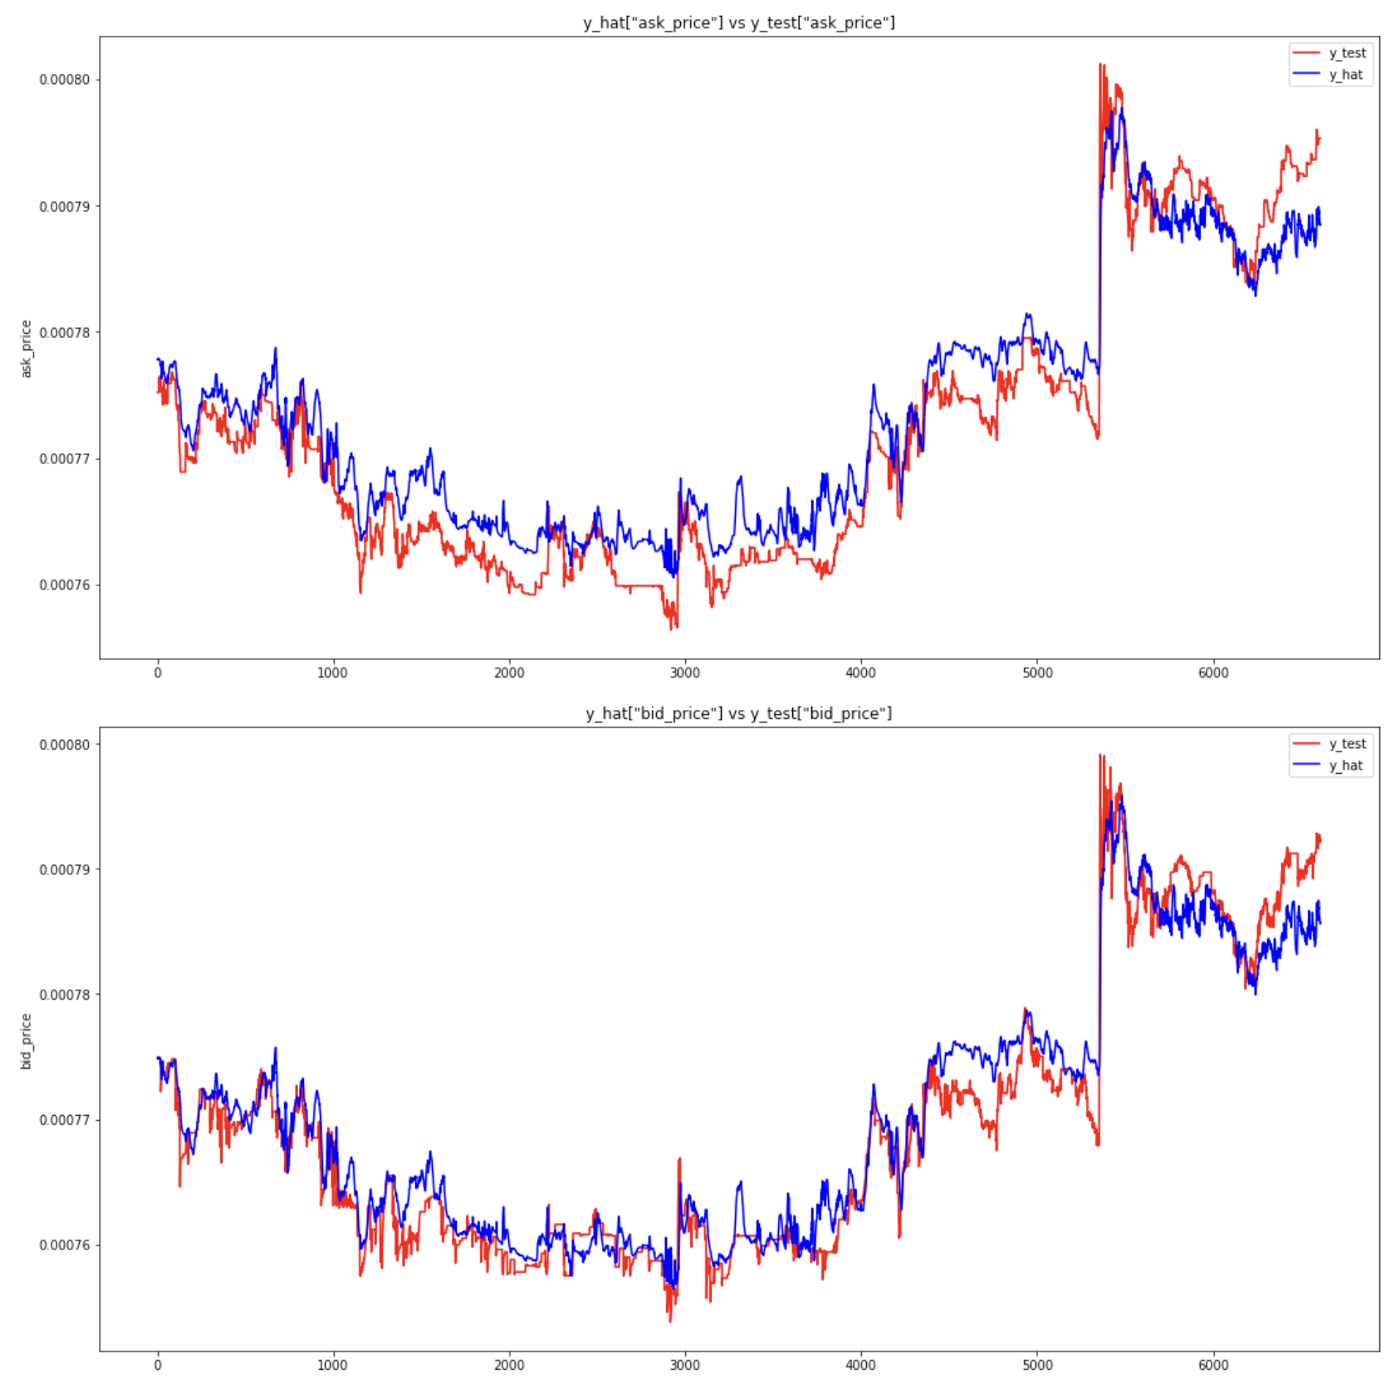 Forecasting Bitcoin closing price series using linear regression and neural networks models